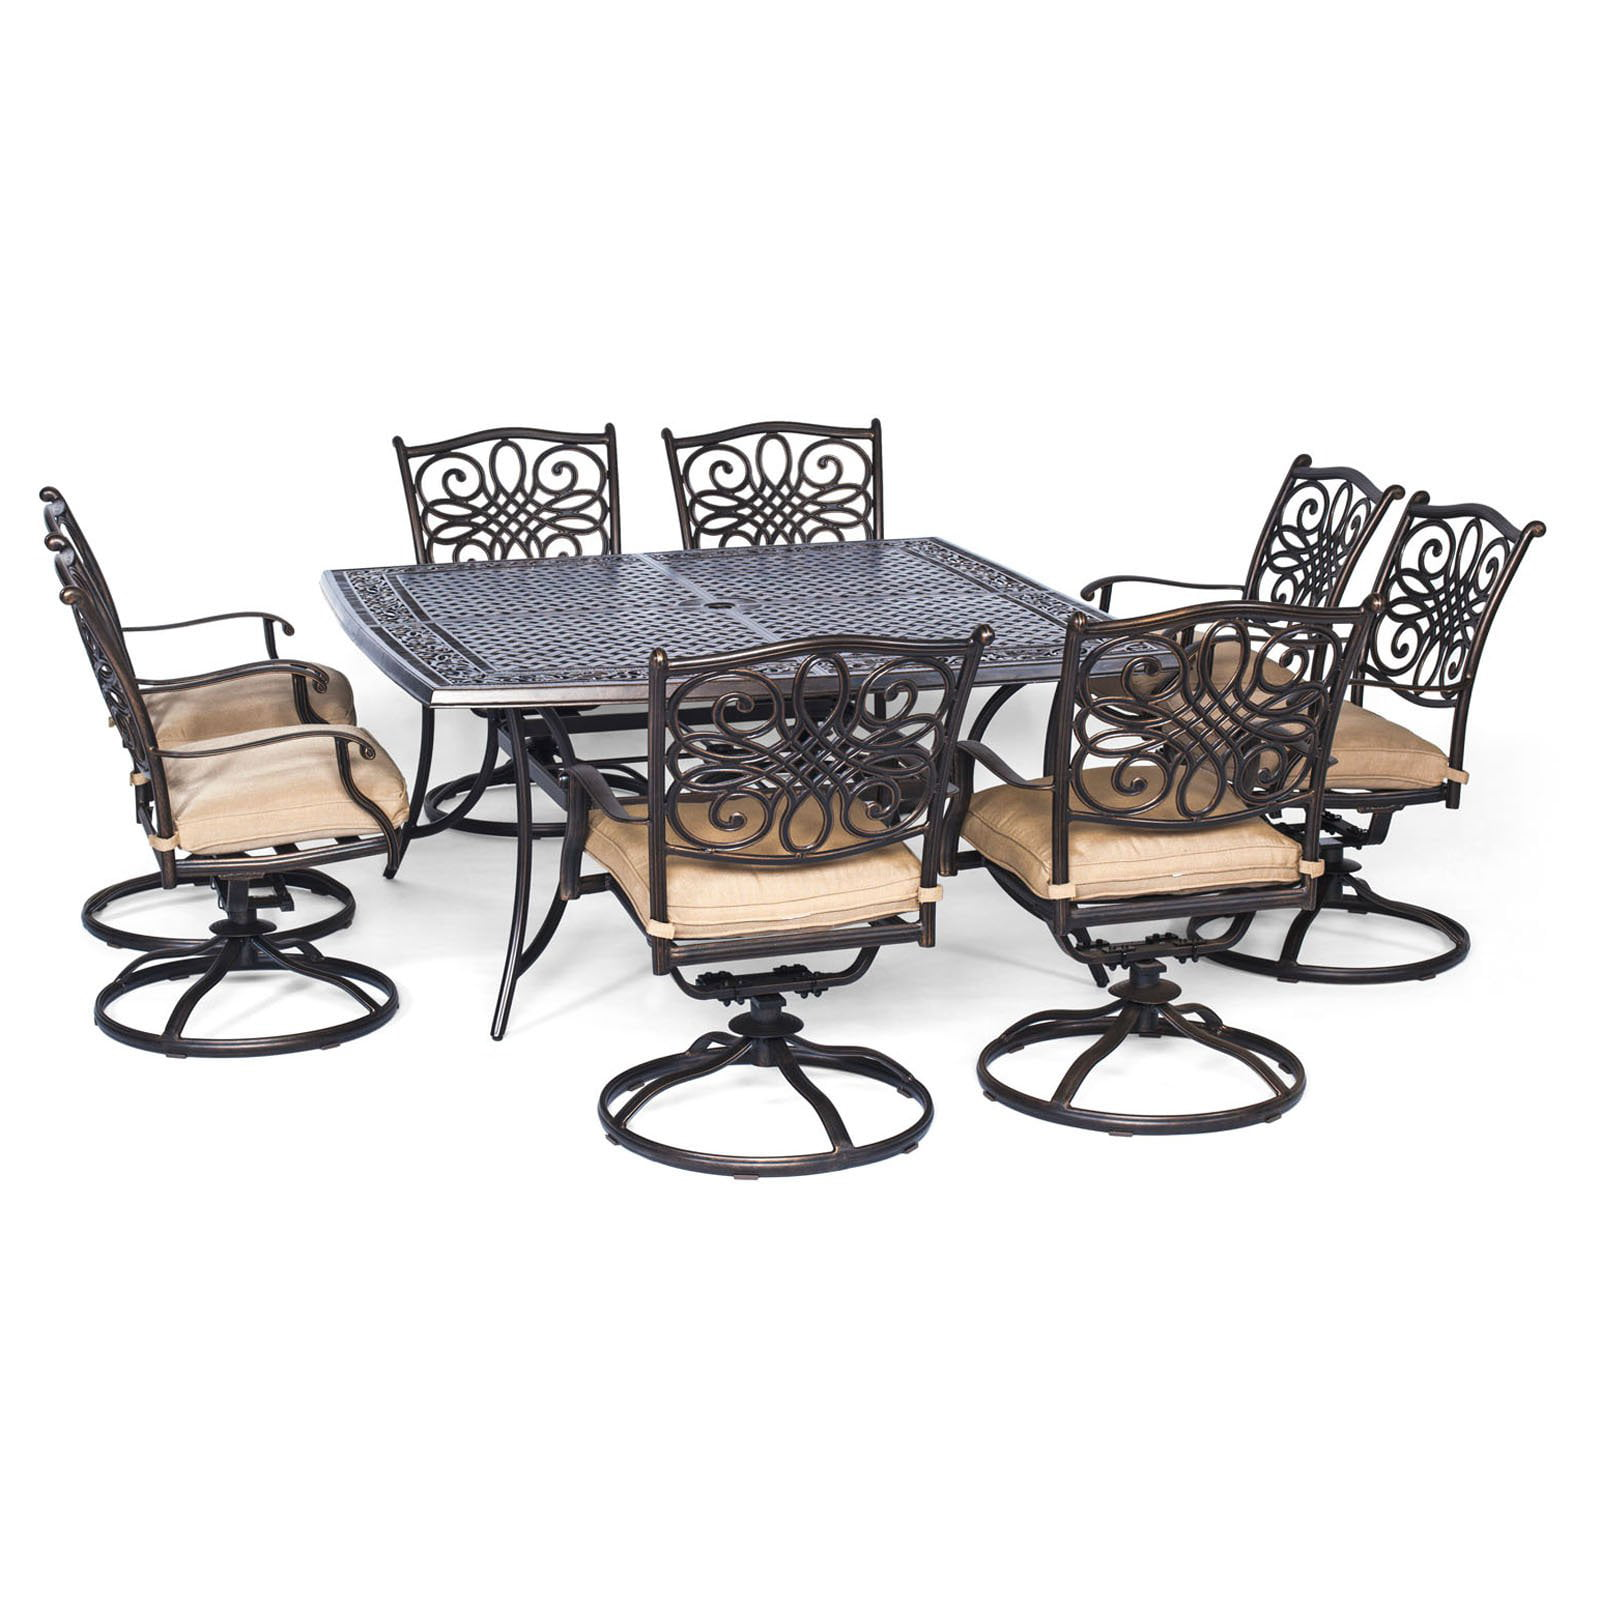 Hanover Outdoor Traditions 9 Piece Dining Set With Large Square Table And 8  Swivel Rockers, Natural Oat/Bronze   Walmart.com